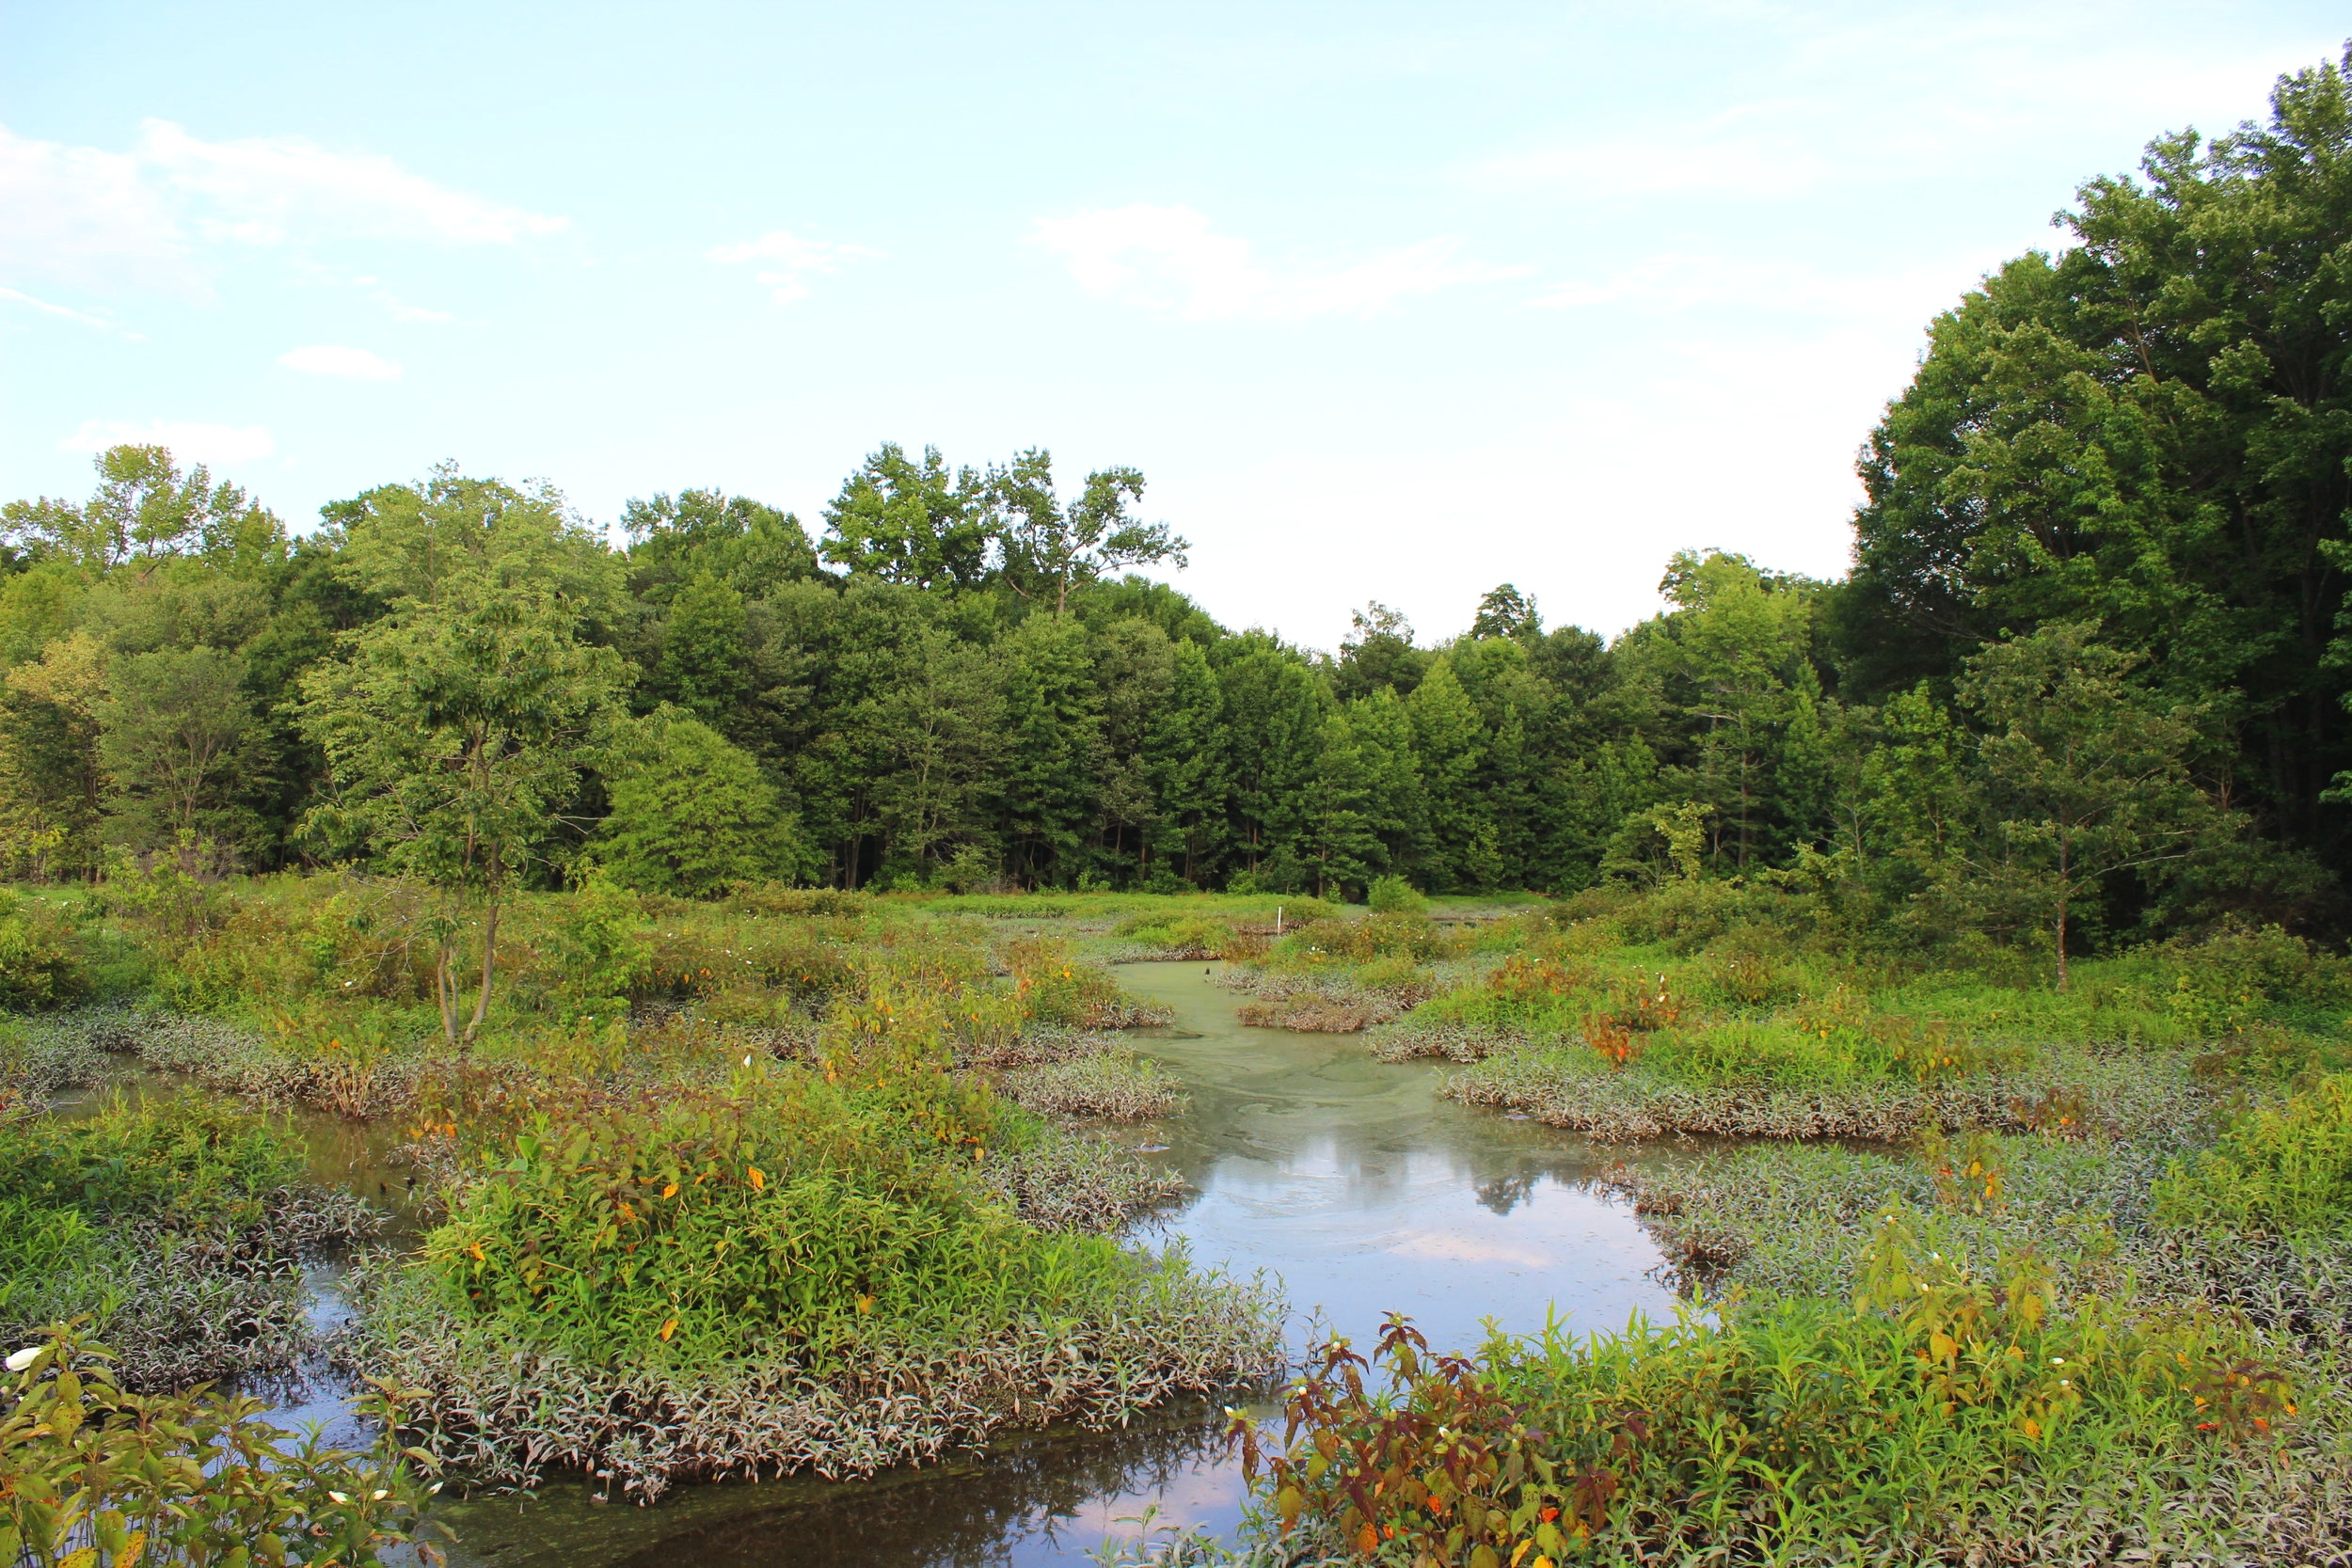 The fluctuating water levels contribute to Huntley Meadows' remarkable animal and plant diversity; note the muddy vegetation that indicates how high water is at times. (click to enlarge)